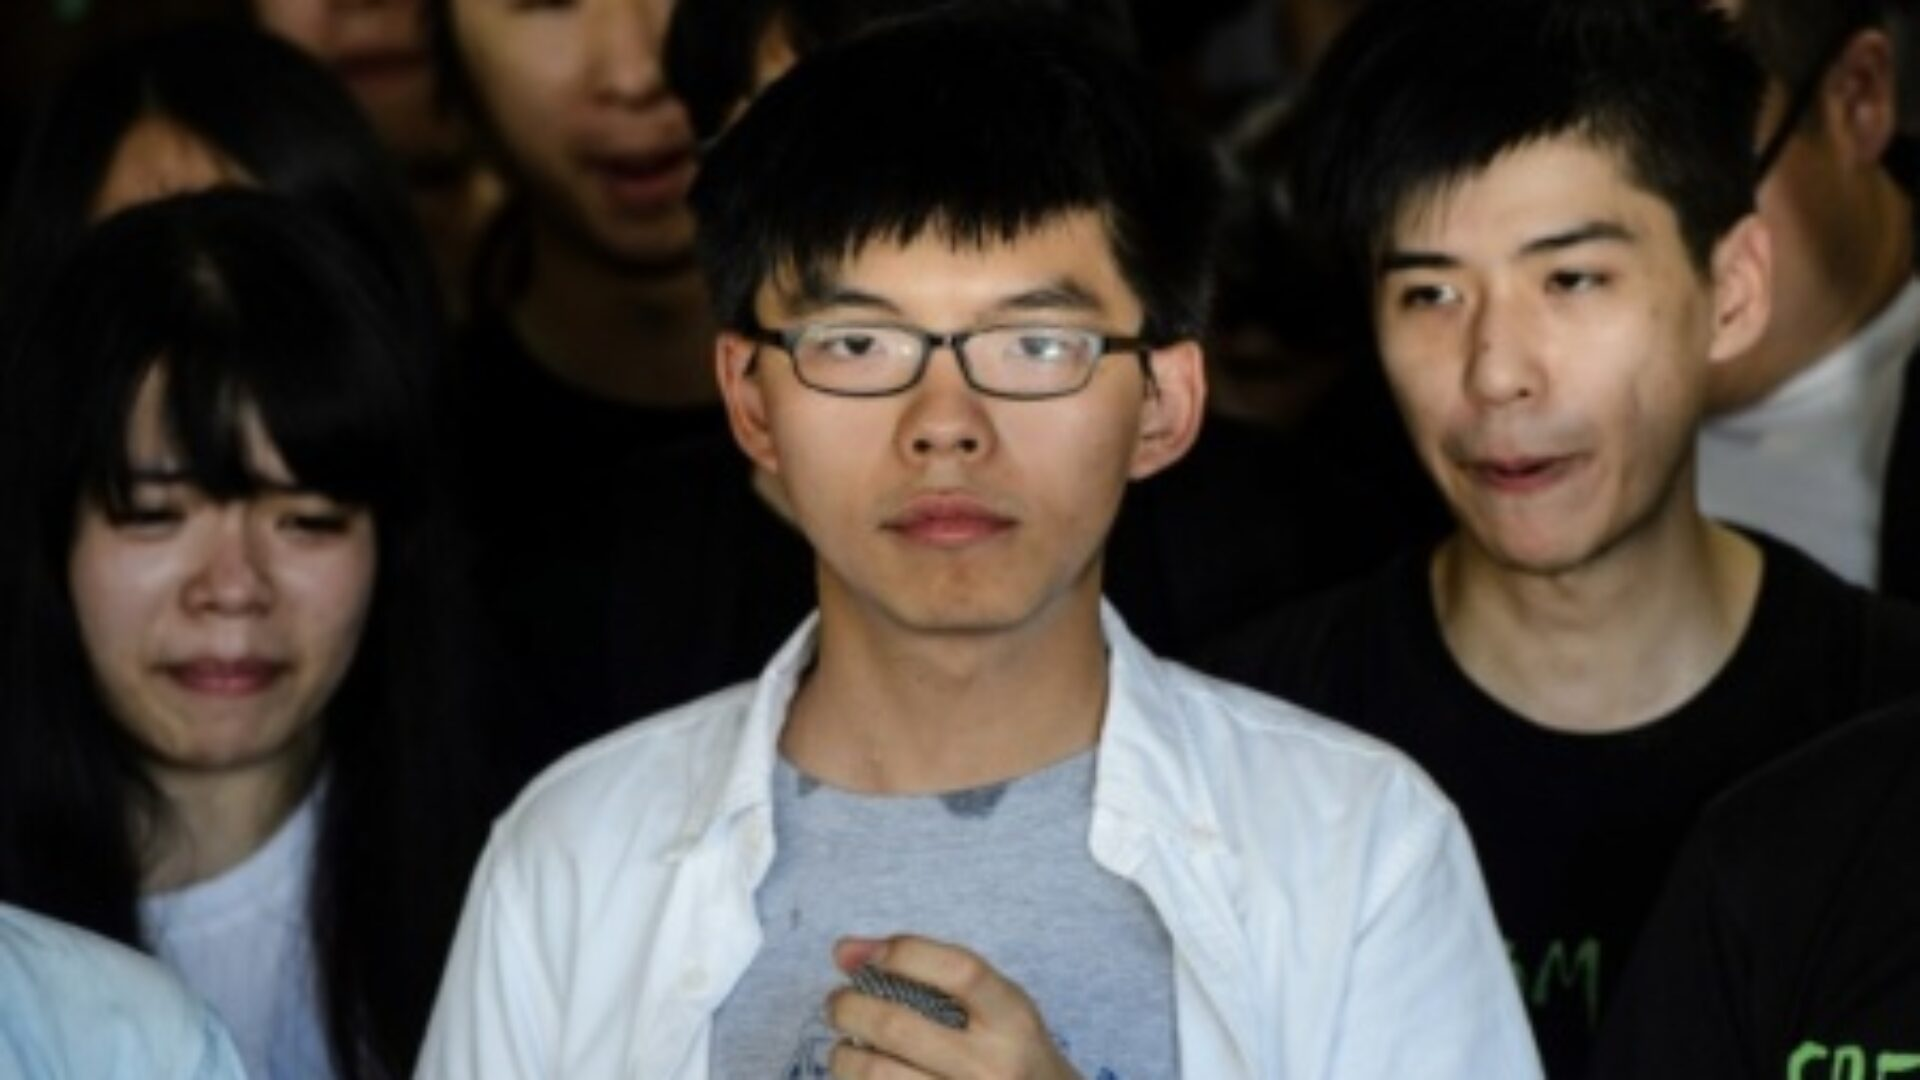 TIME: Facing Jail, Democracy Activist Joshua Wong Says 'Hong Kong Is Under Threat'